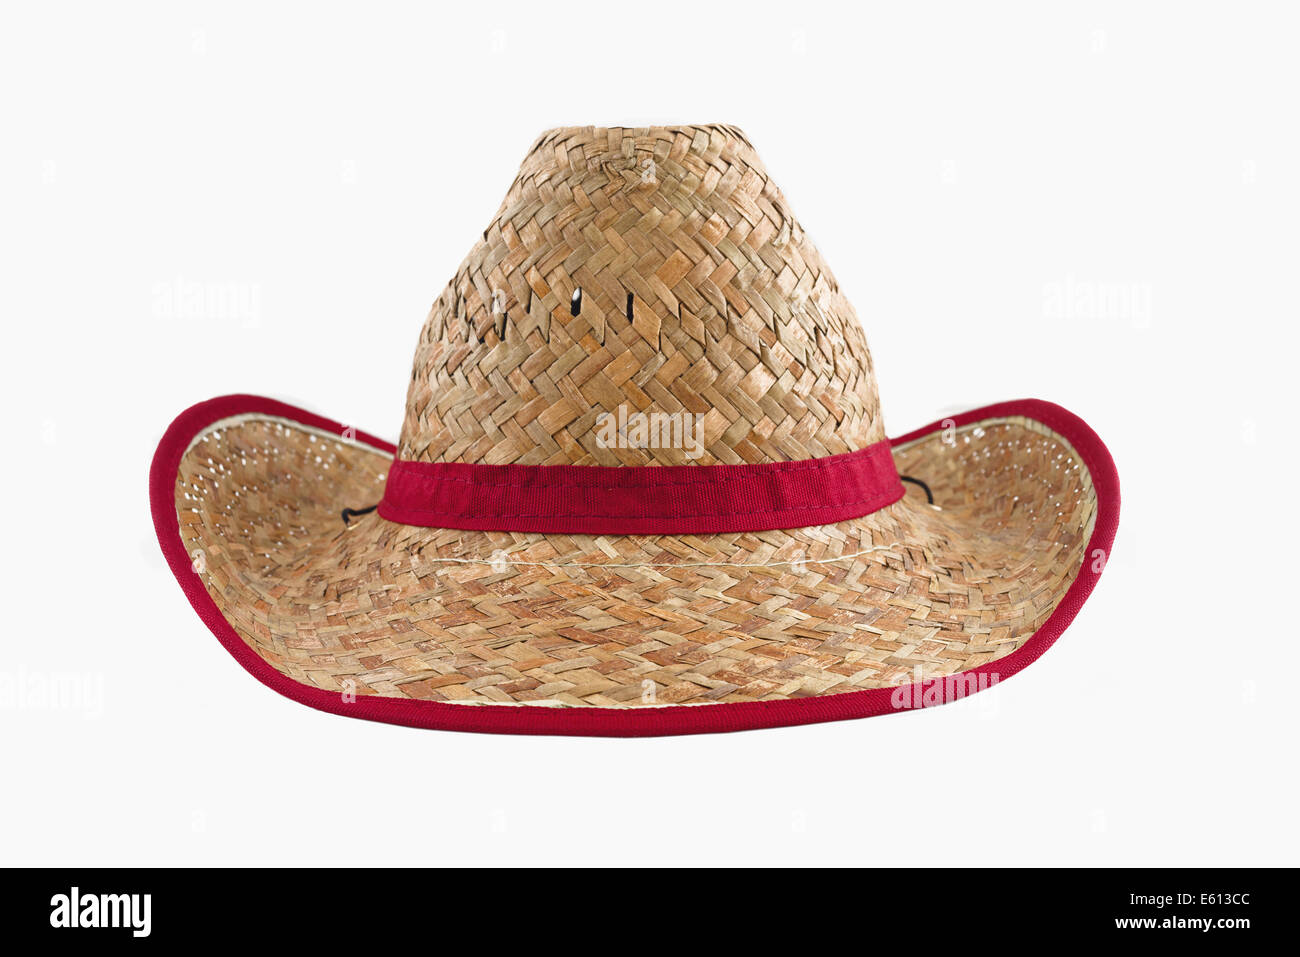 b7666ffc678 Traditional American Cowboy straw hat isolated on white background. Farmer  accessory.